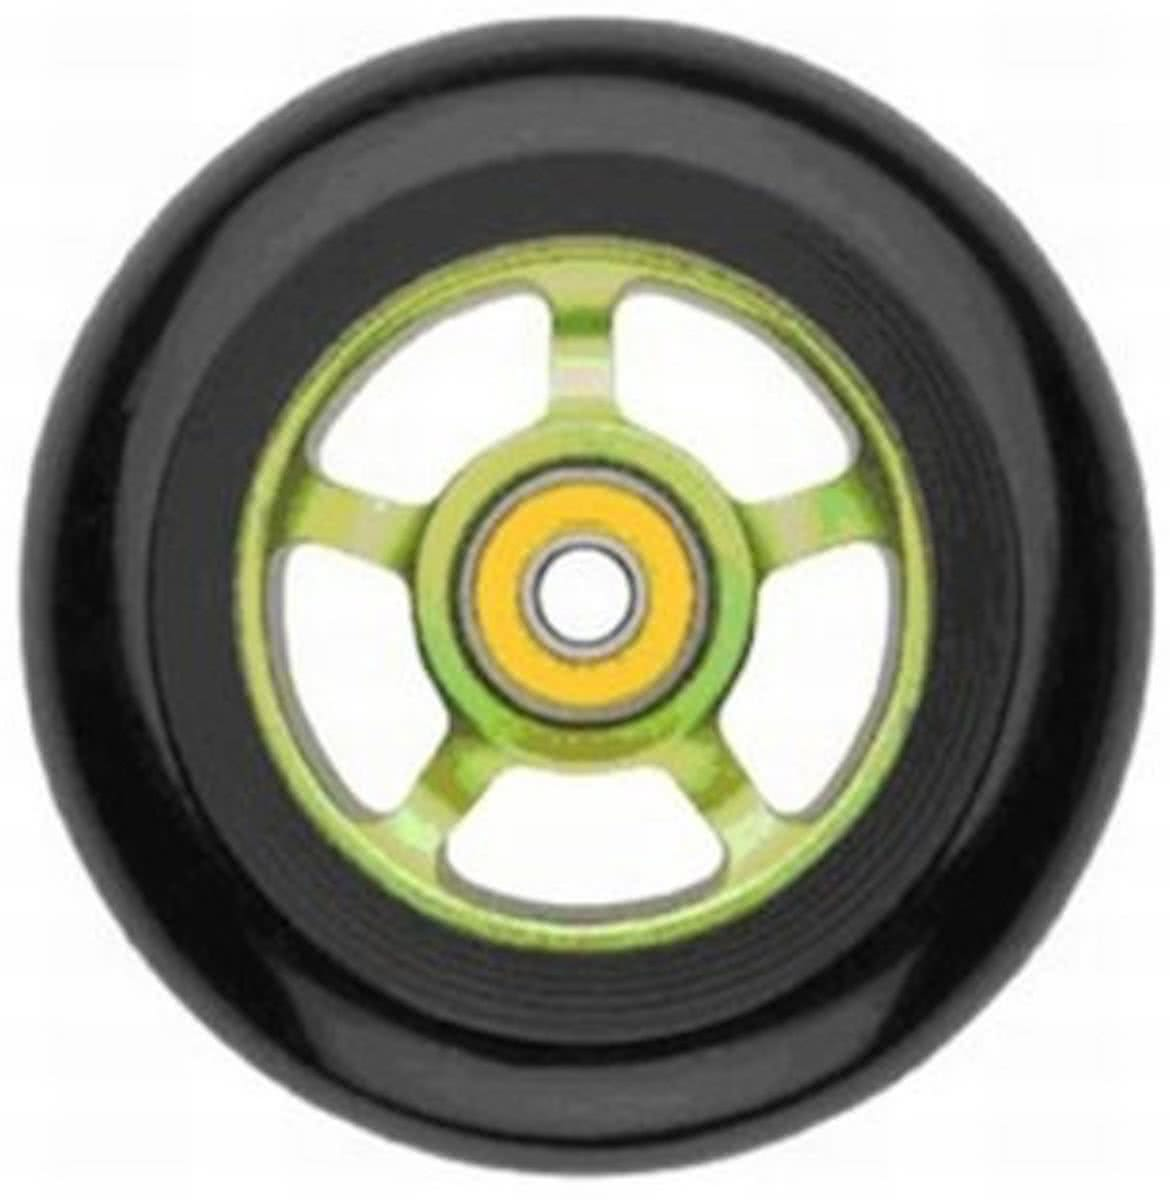 Wheel   pro 100 mm voor oa Beast step: groen (35073111)